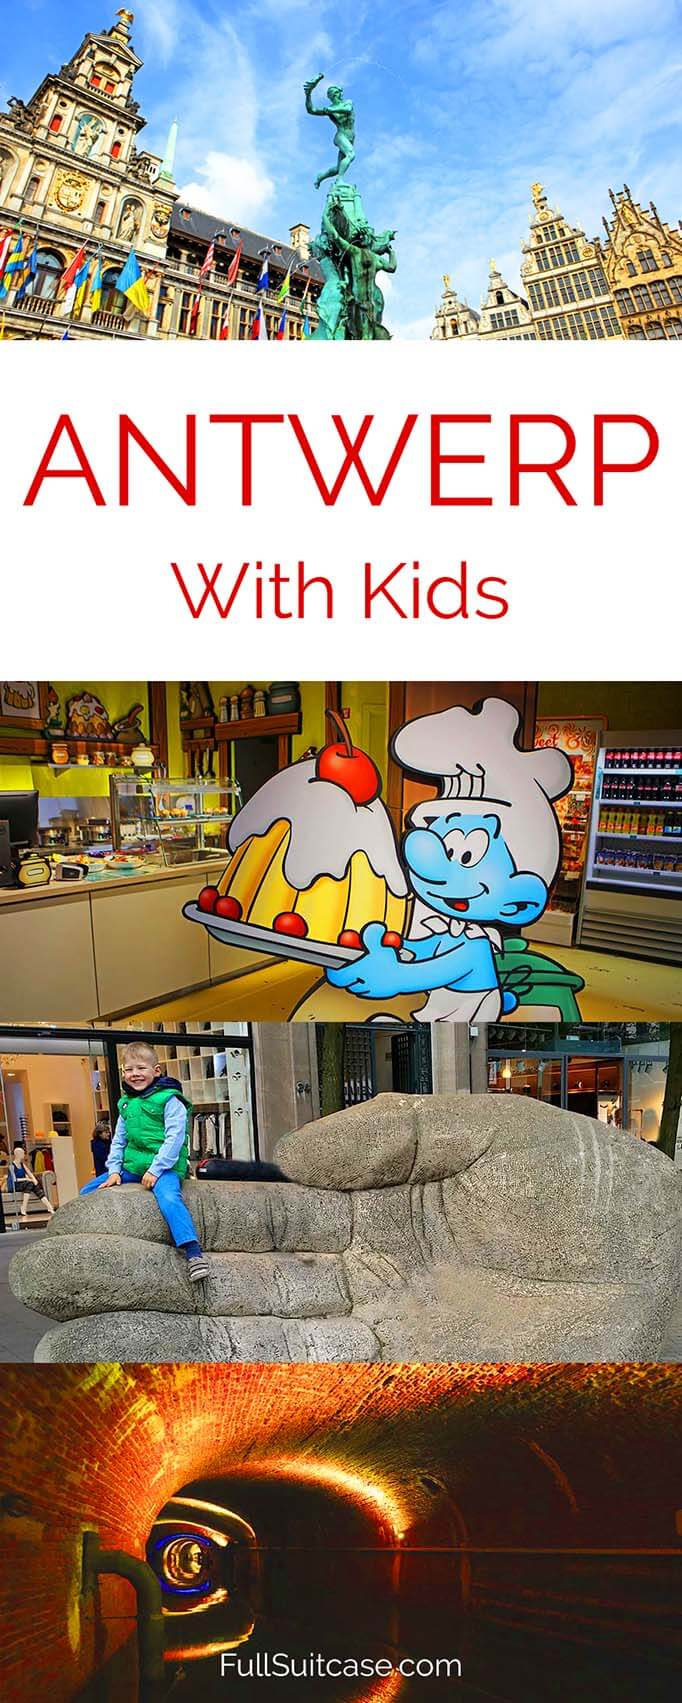 Best places to see and fun things to do in Antwerp with kids #Belgium #Antwerp